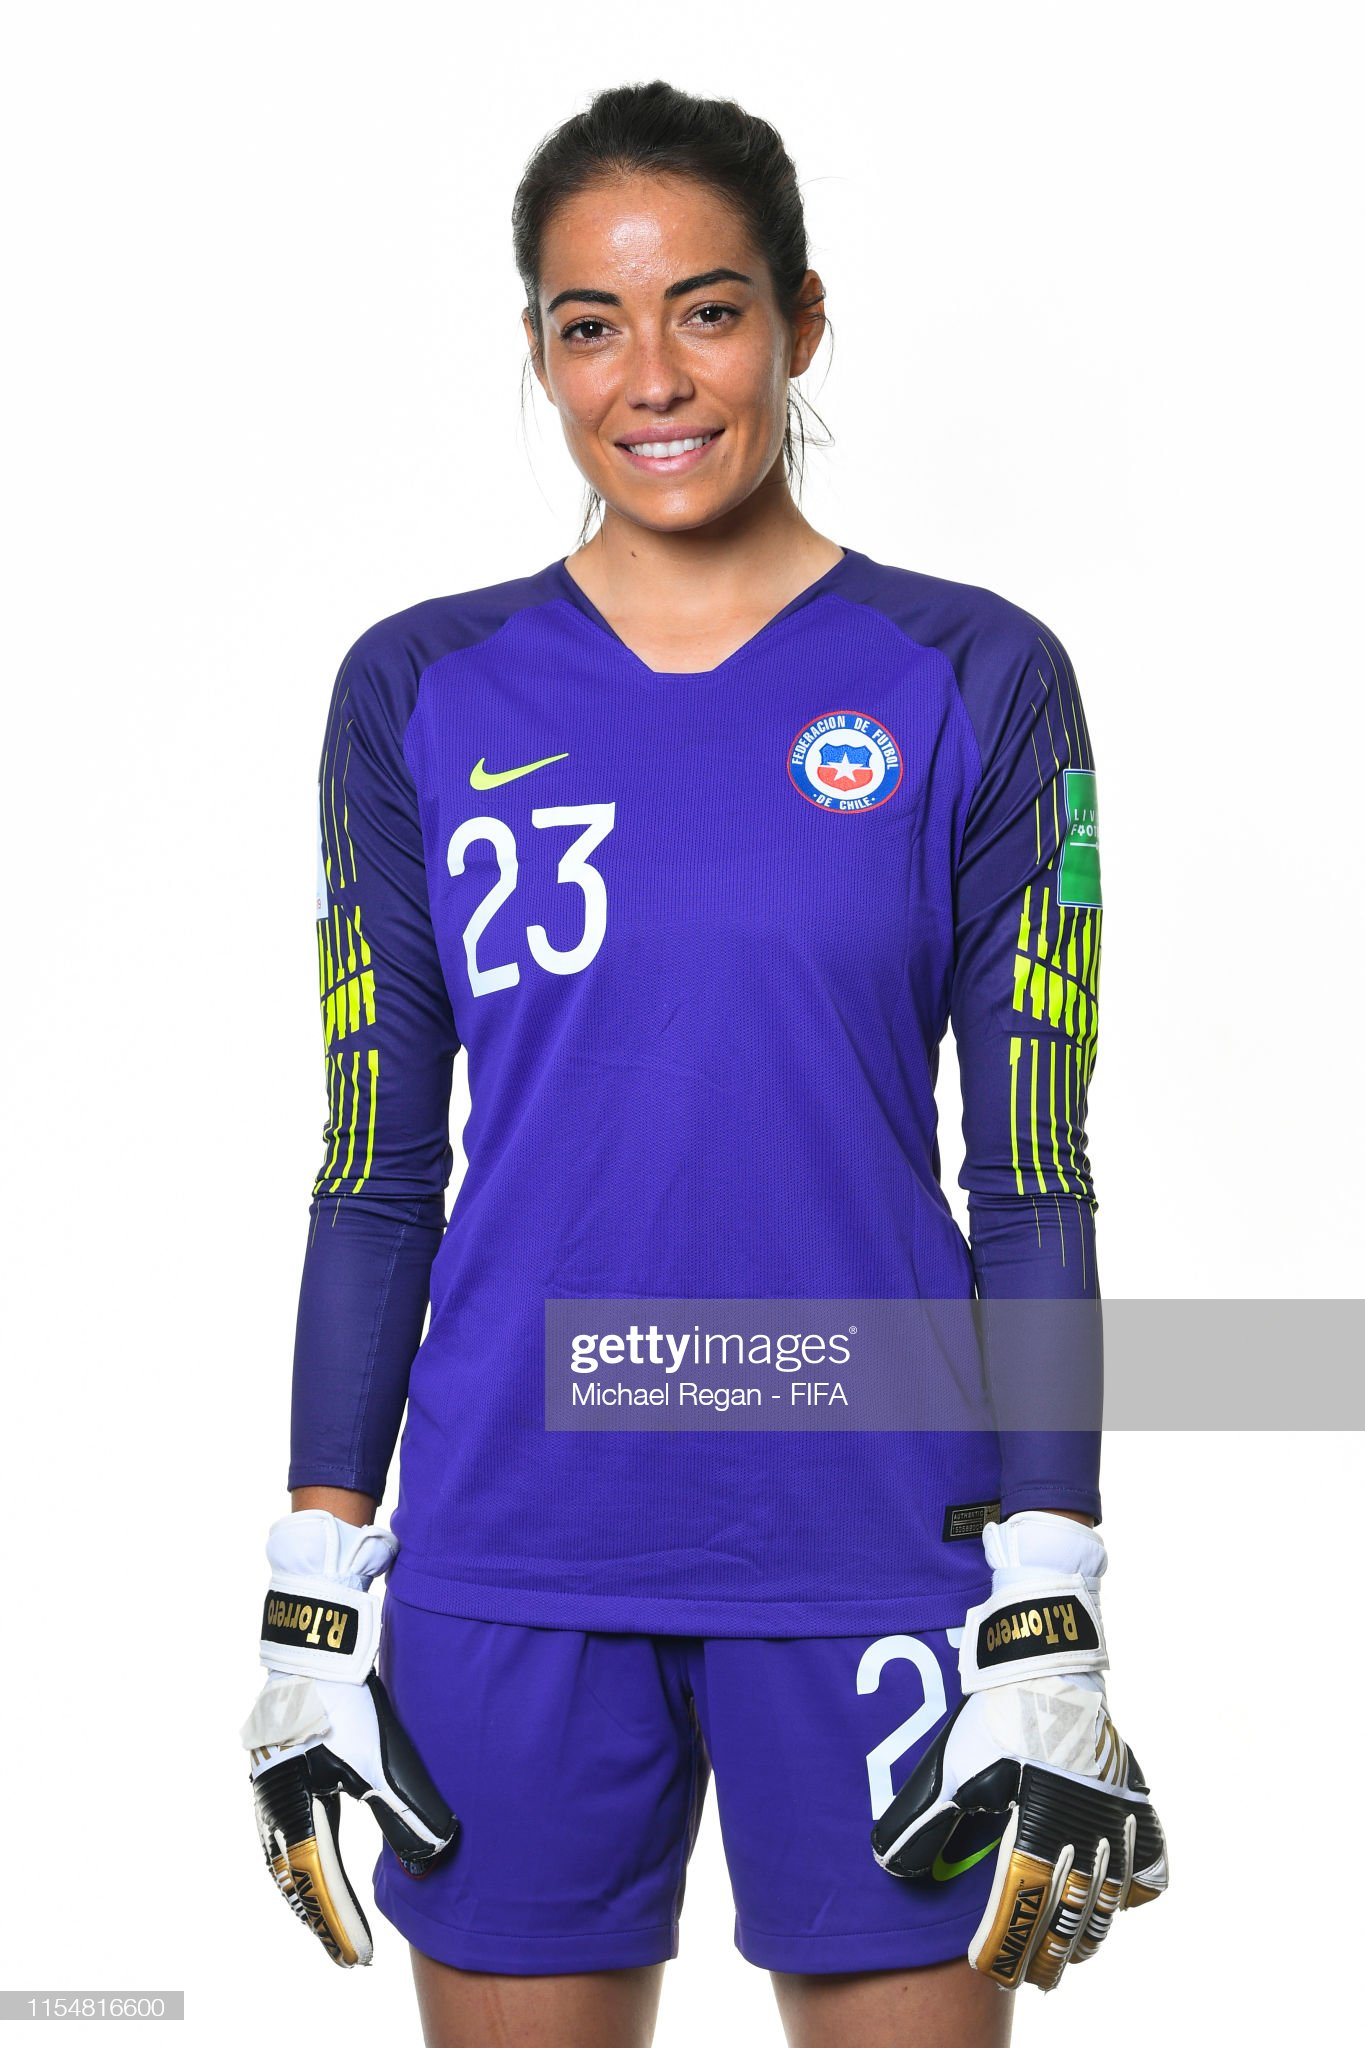 CHILE - Etnografía, cultura y mestizaje - Página 4 Ryan-torrero-of-chile-poses-for-a-portrait-during-the-official-fifa-picture-id1154816600?s=2048x2048